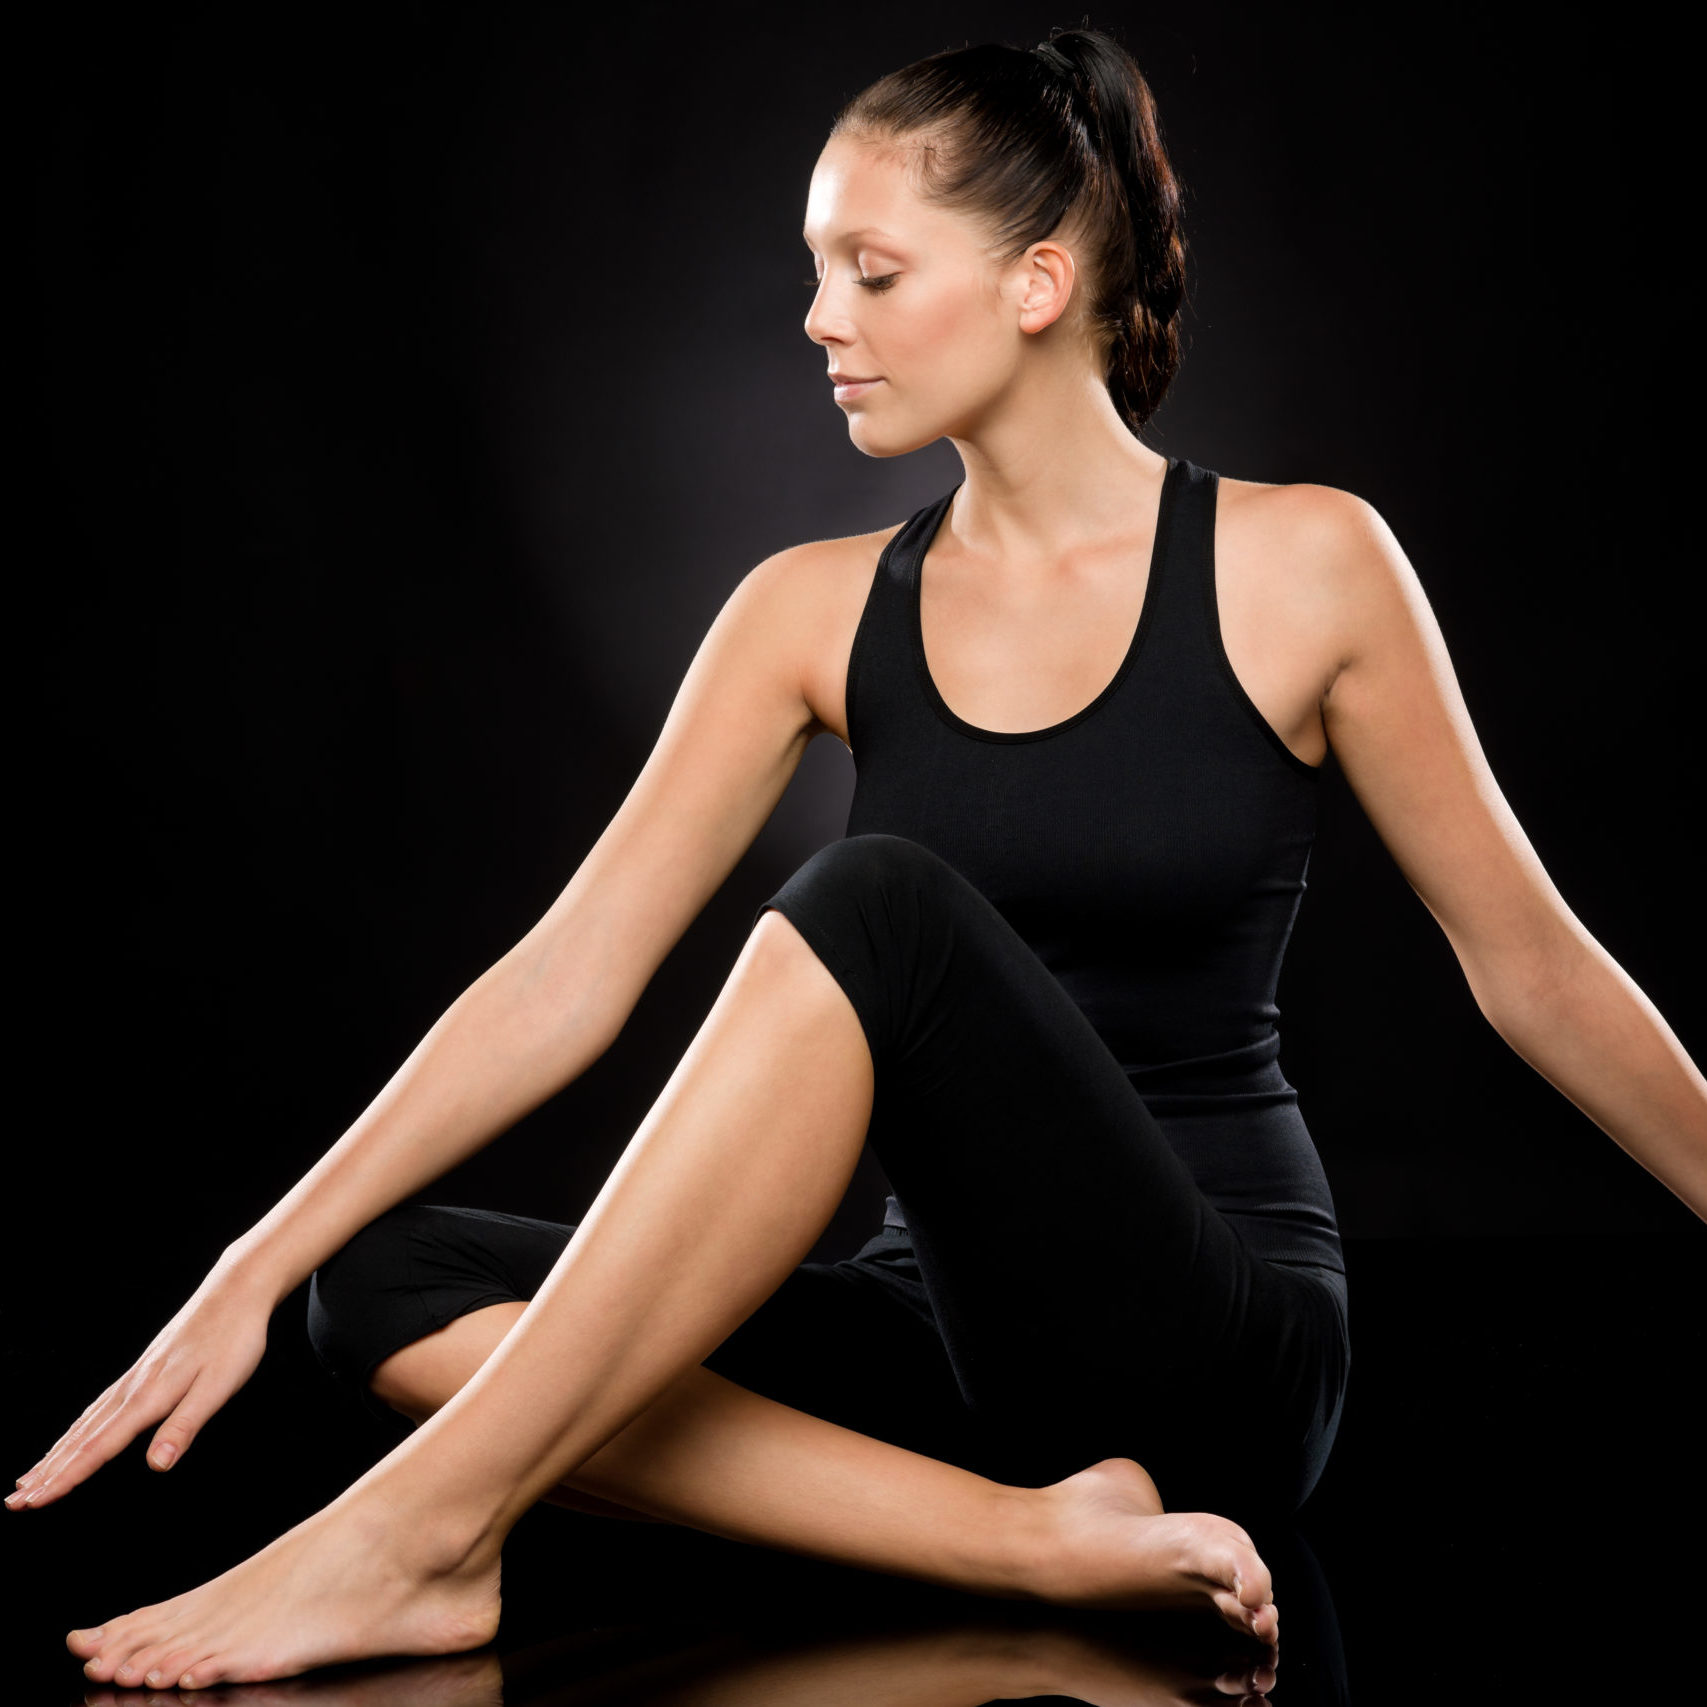 Tranquil young and barefoot woman performing yoga with stretched arms